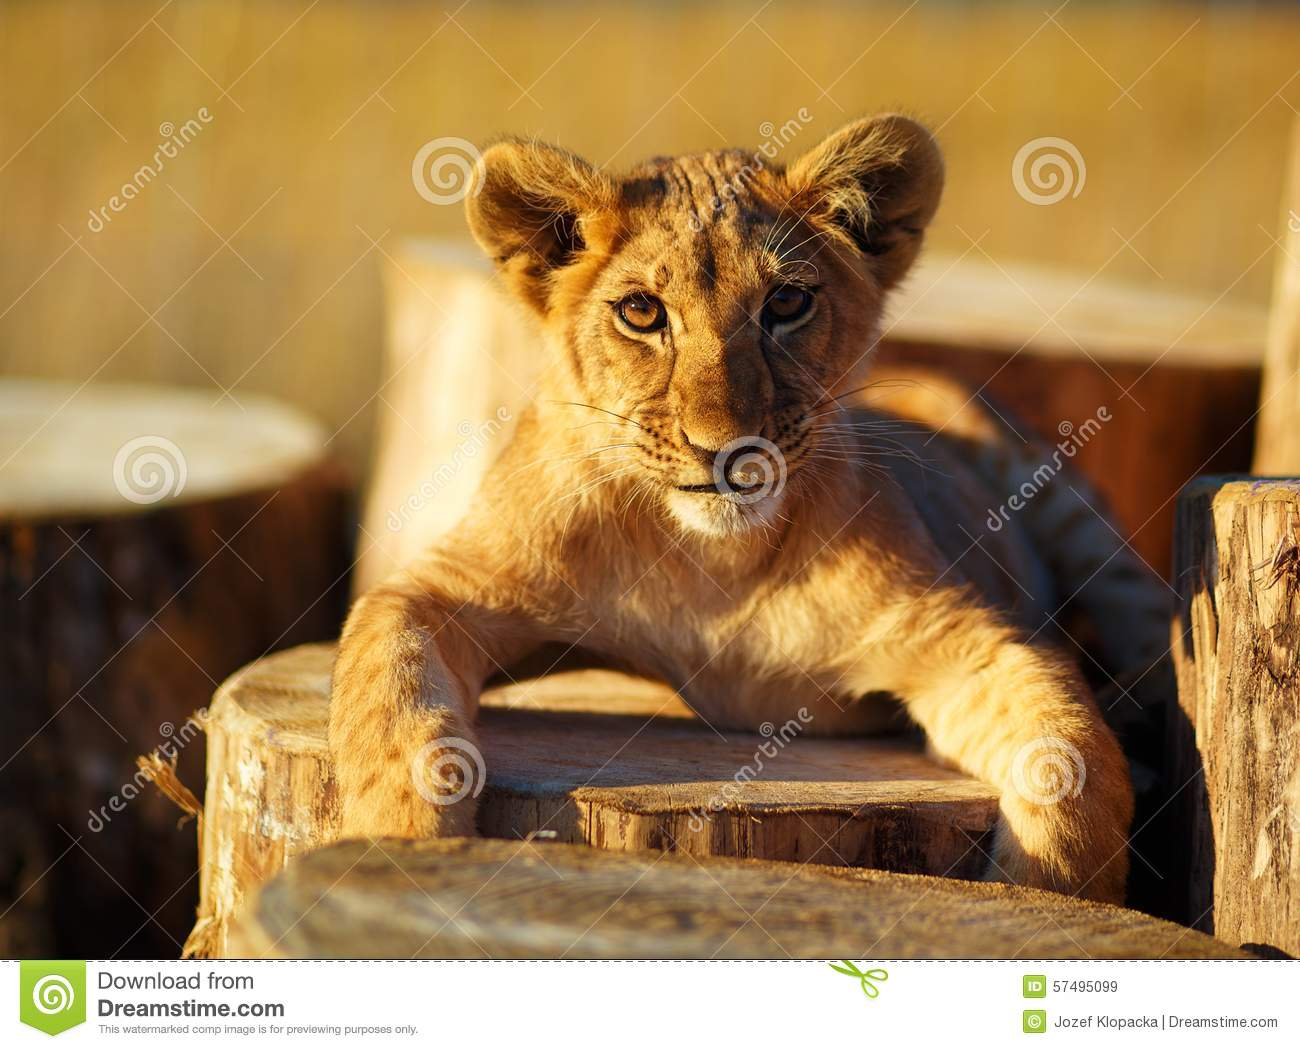 petit animal de lion dans la nature et le rondin en bois contact visuel image stock image du. Black Bedroom Furniture Sets. Home Design Ideas